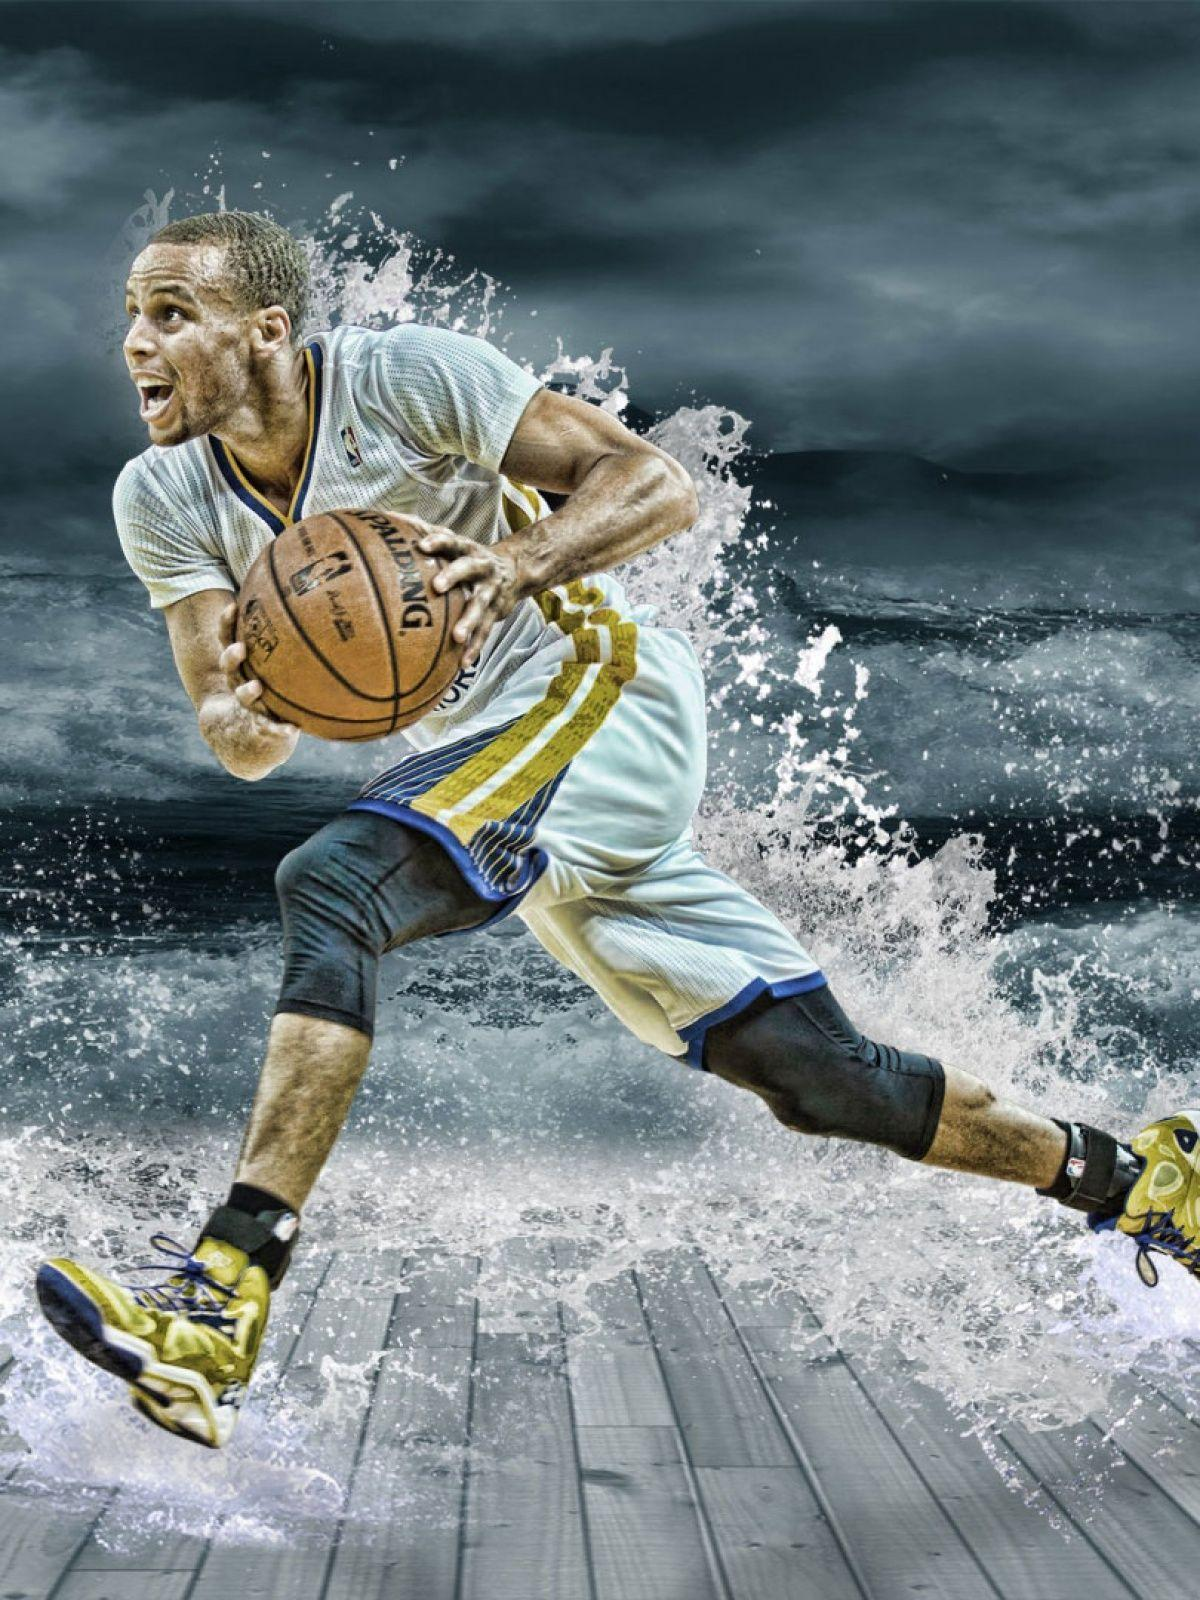 Stephen Curry Splash Mobile Wallpaper - Mobiles Wall